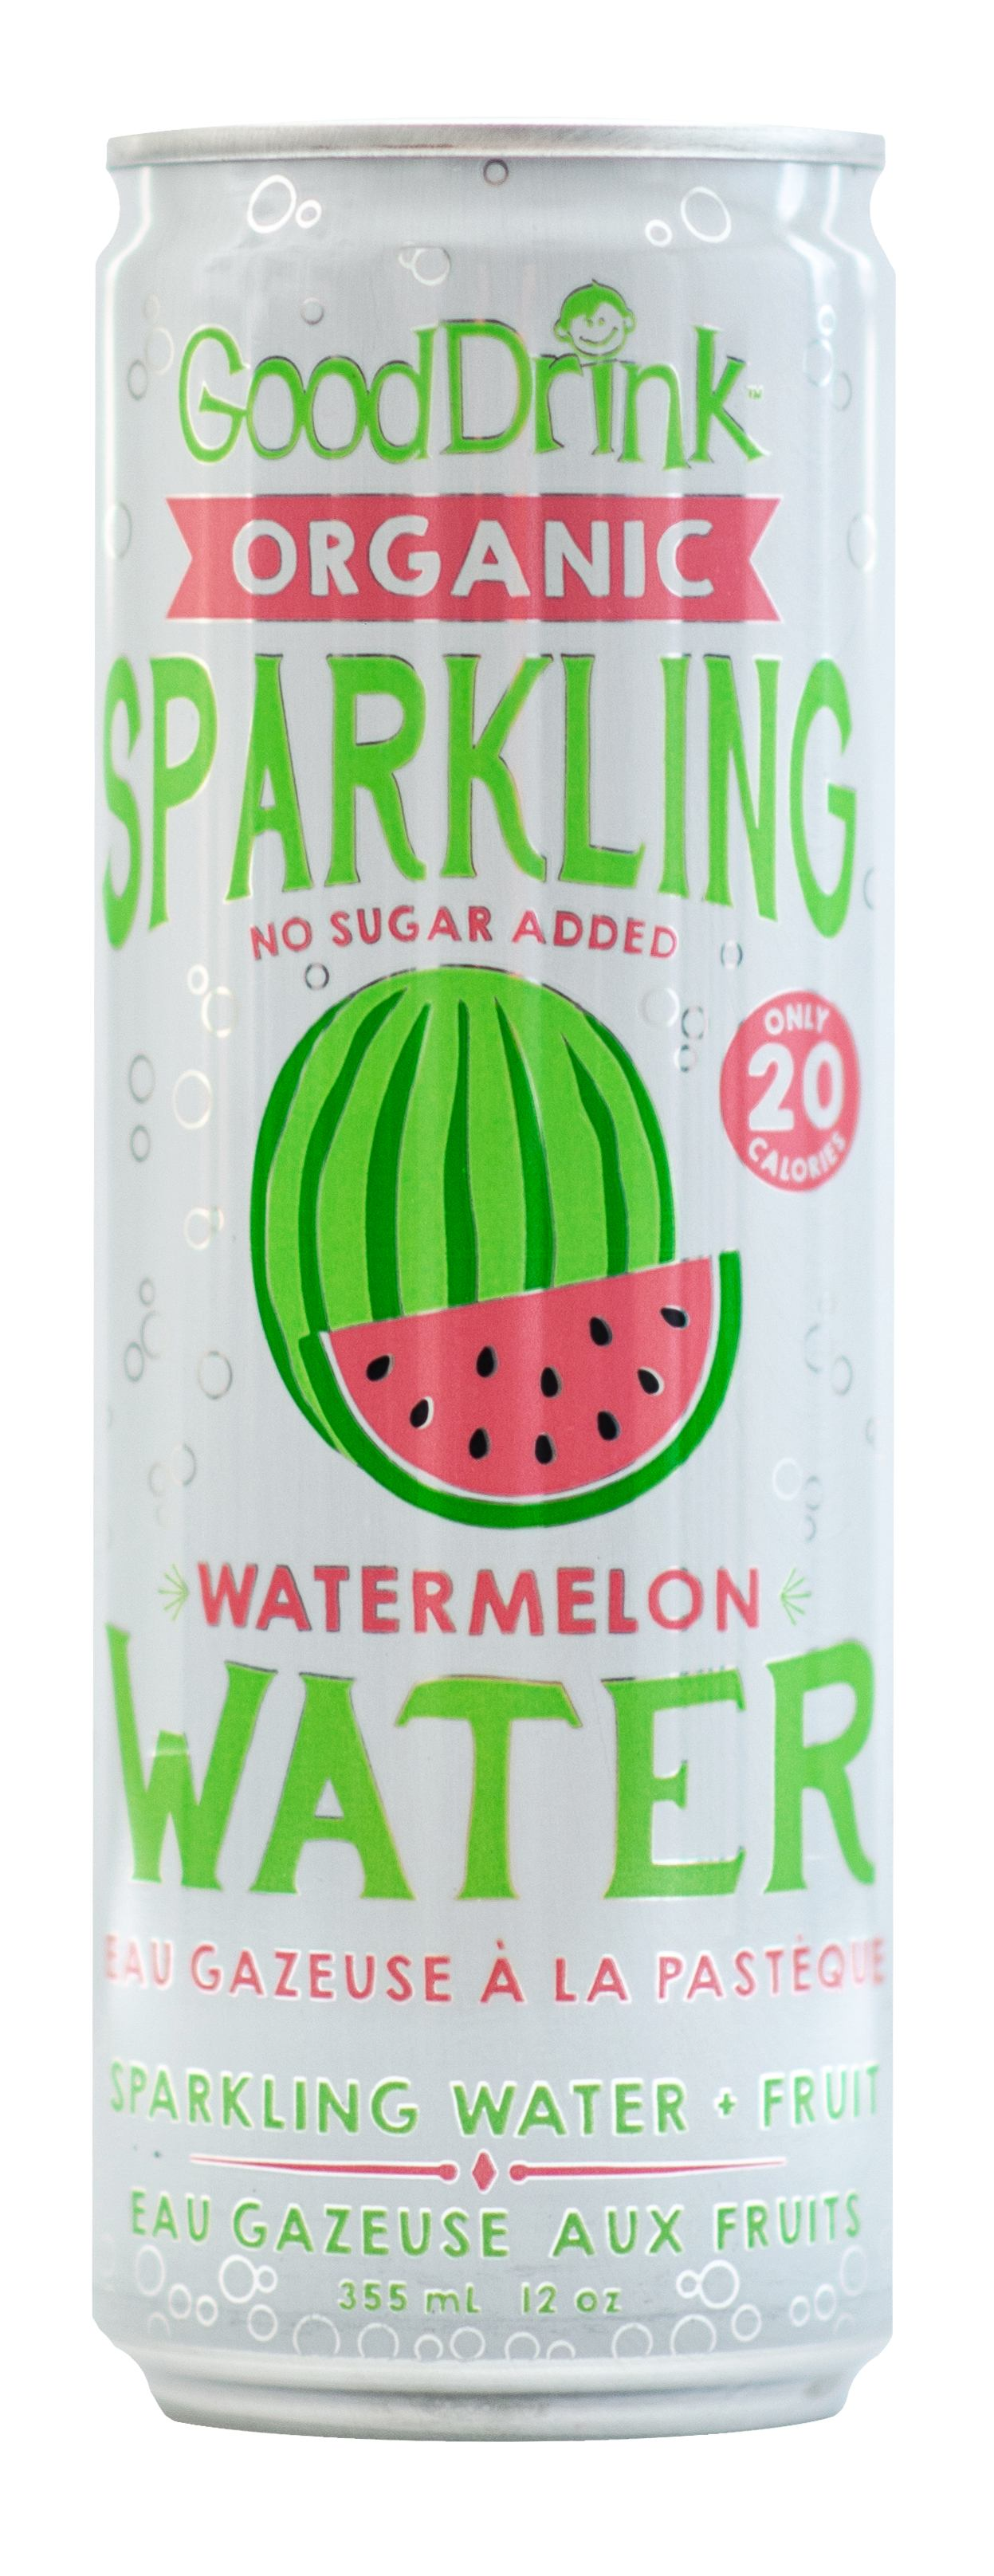 Food & Drink - Good Drink - Sparkling Water, Watermelon, 355ml